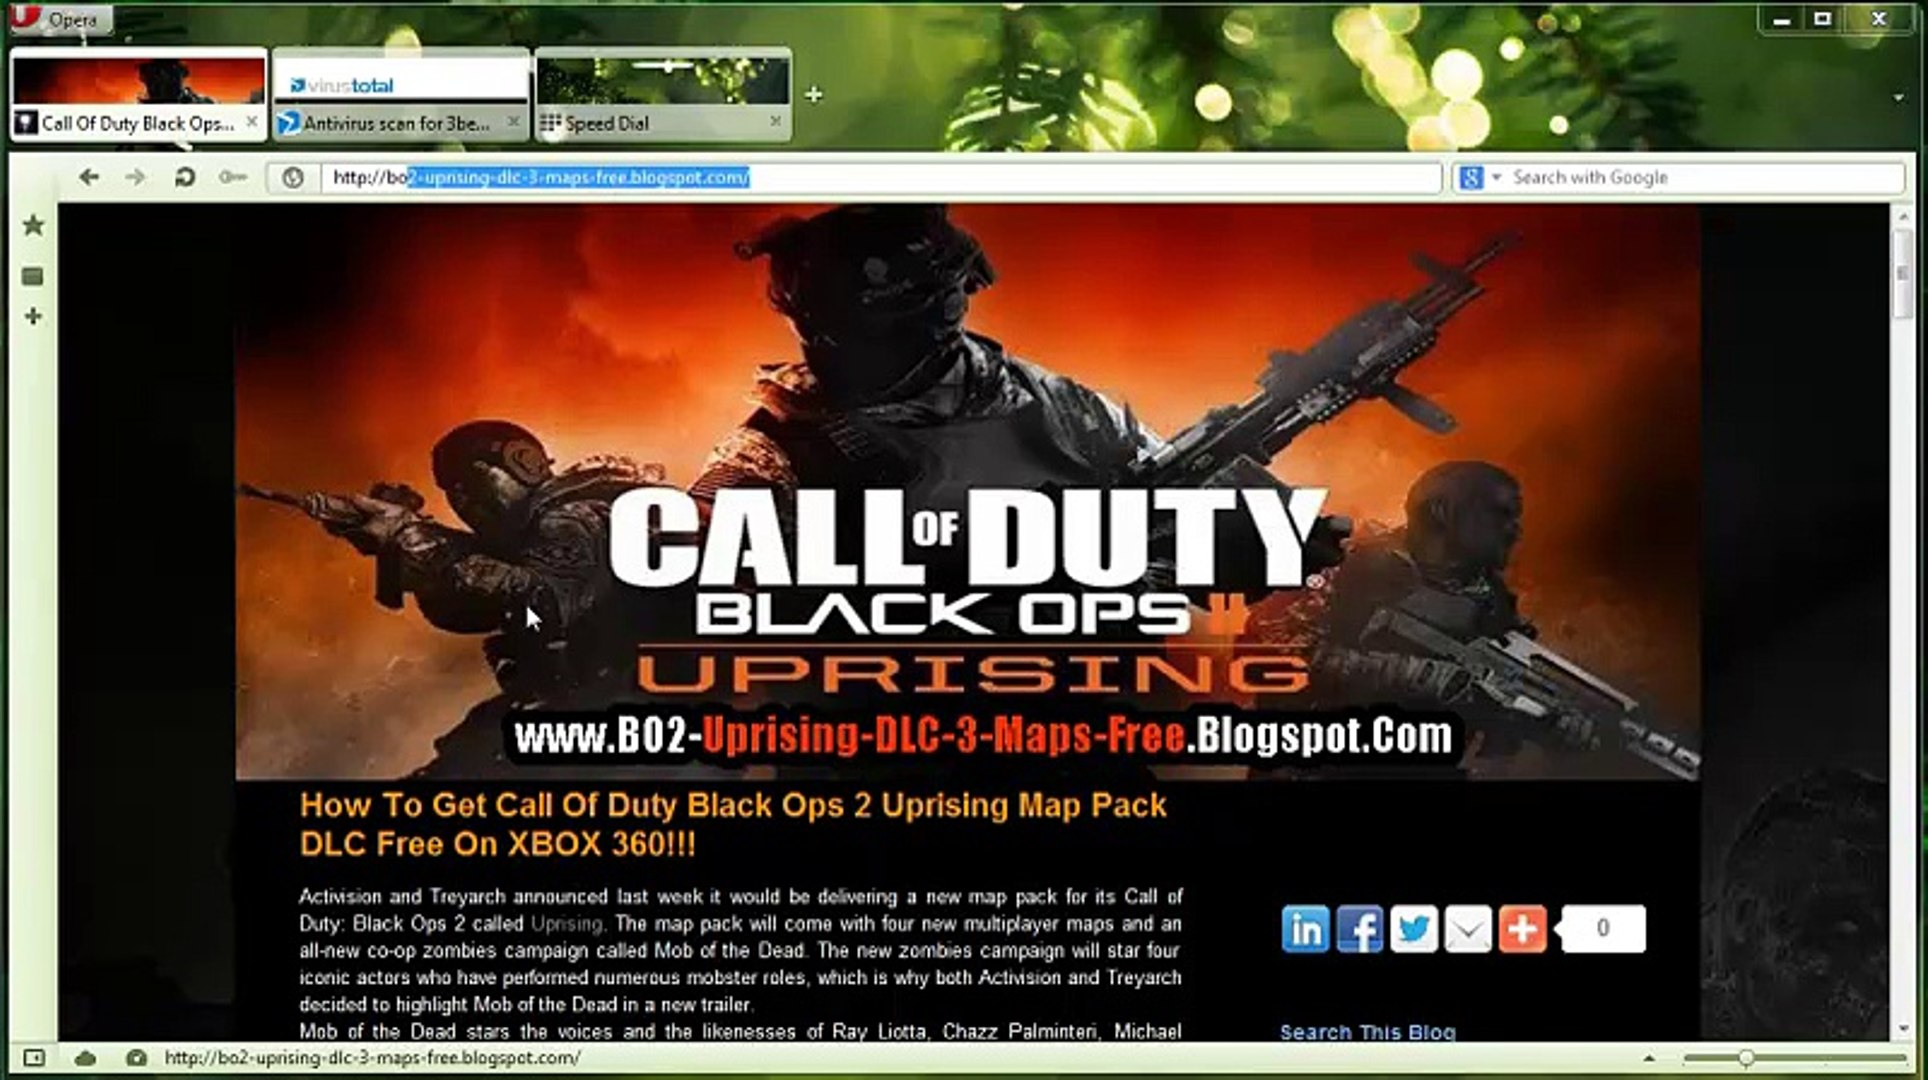 Call of Duty Black Ops 2 Uprising Map Pack DLC Activation Code Free Call Of Duty Black Ops Map Packs on call of duty ghosts maps, black ops 1 map packs, all black ops map packs, call duty black ops 3, call of duty blackops 2, call of duty mw3 map packs, call of duty advanced warfare maps, black ops ii map packs, call duty black ops zombies all maps, call of duty bo2 map packs, black ops 2 dlc map packs, call duty ghost multiplayer, call of duty 2 guns, call of duty apocalypse trailer, call of duty 3 zombies maps, bo2 dlc map packs, call of duty all zombie maps, call of duty 2 multiplayer maps, gta map packs, all 4 bo2 map packs,